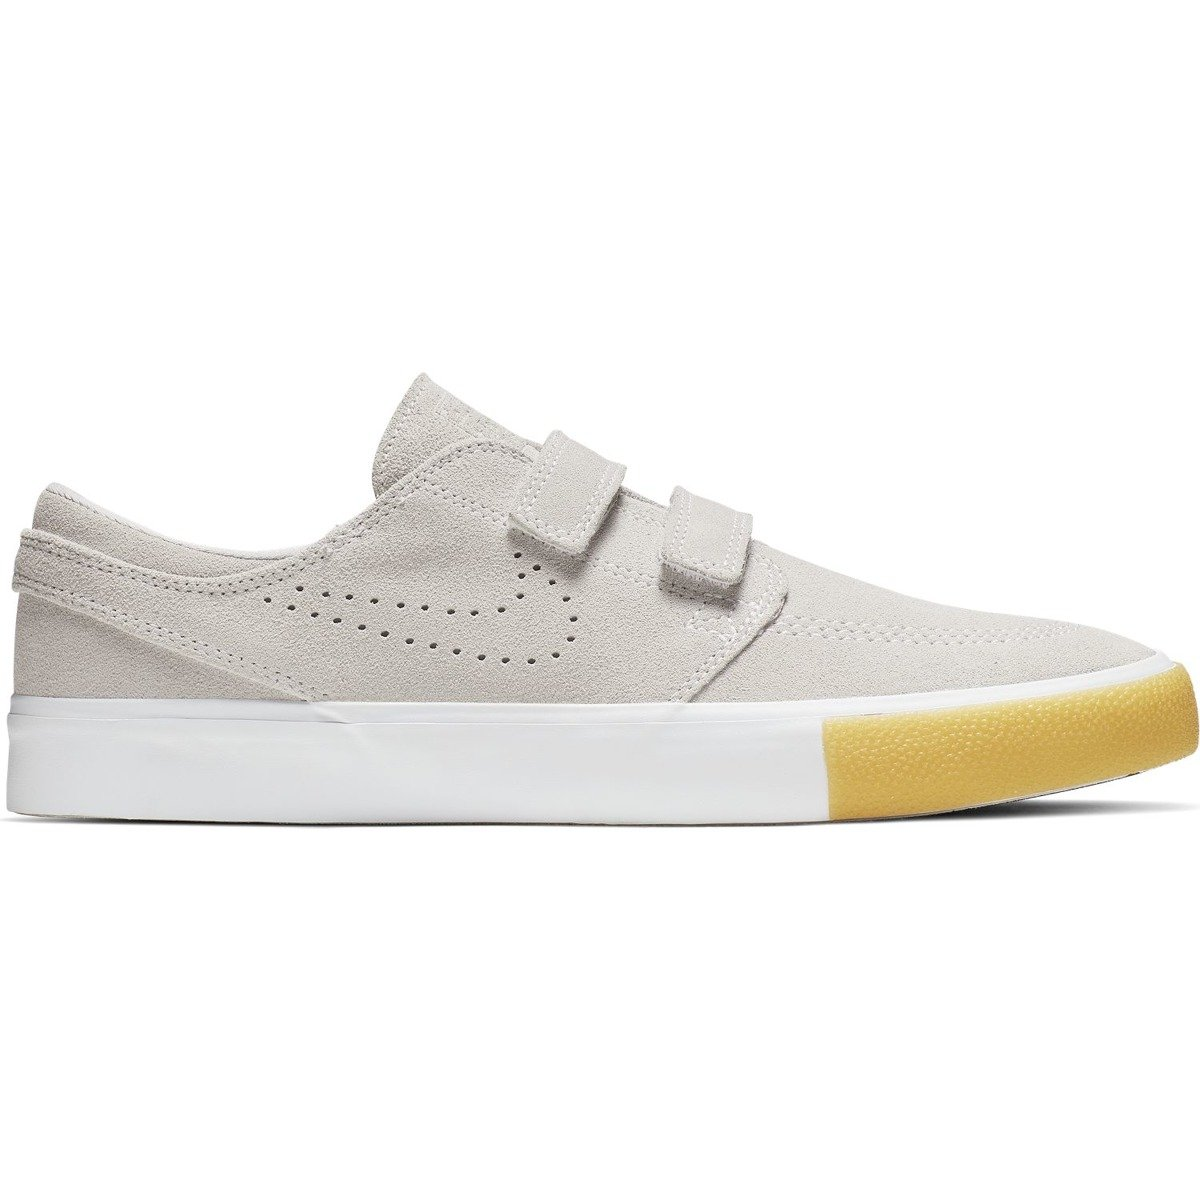 0ad81d1b9a6 Nike SB. CD6577-100. Janoski Ac Rm Se White white-vast Grey-gum Yellow  Click to zoom ...